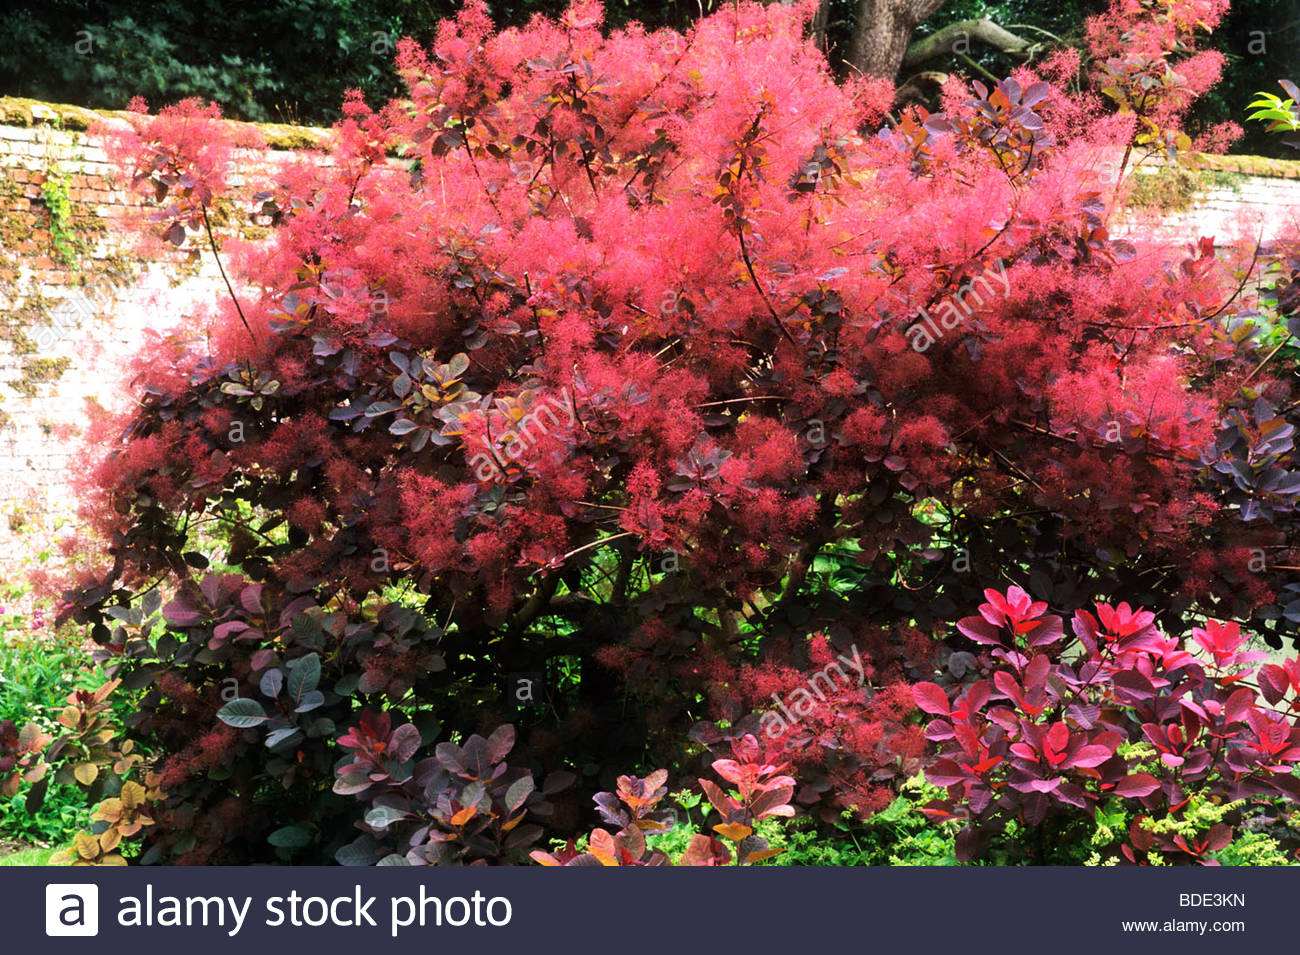 clever cotinus grace red blossom flower flowers garden plant